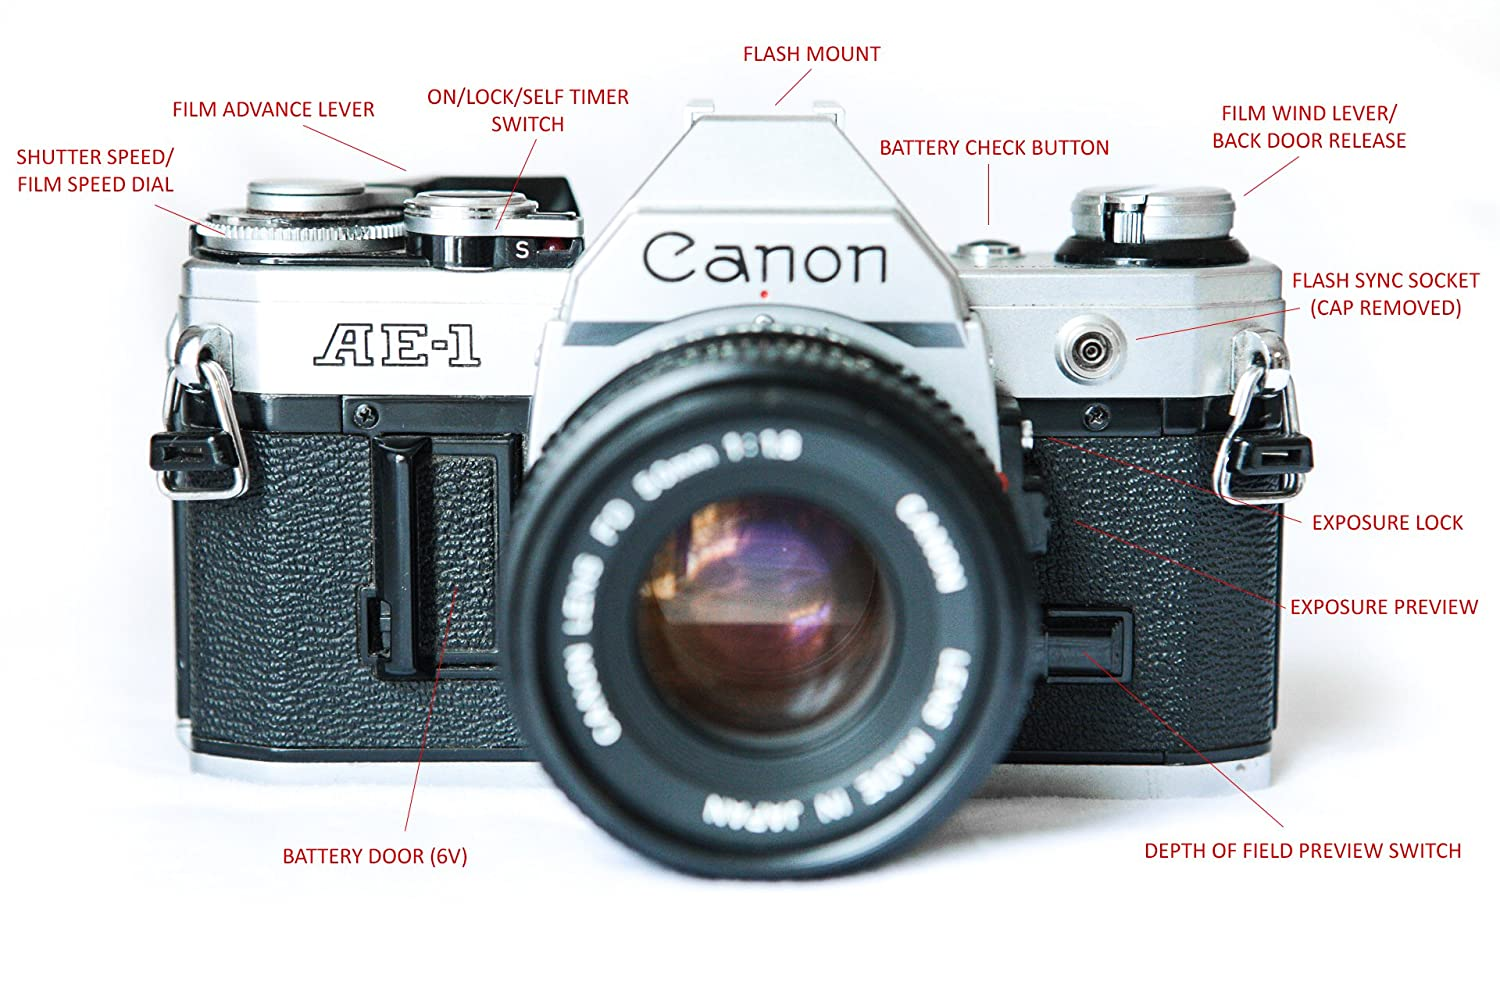 Amazon.com : Canon AE 1 35mm Film Camera W/ 50mm 1:1.8 Lens : Camera U0026 Photo